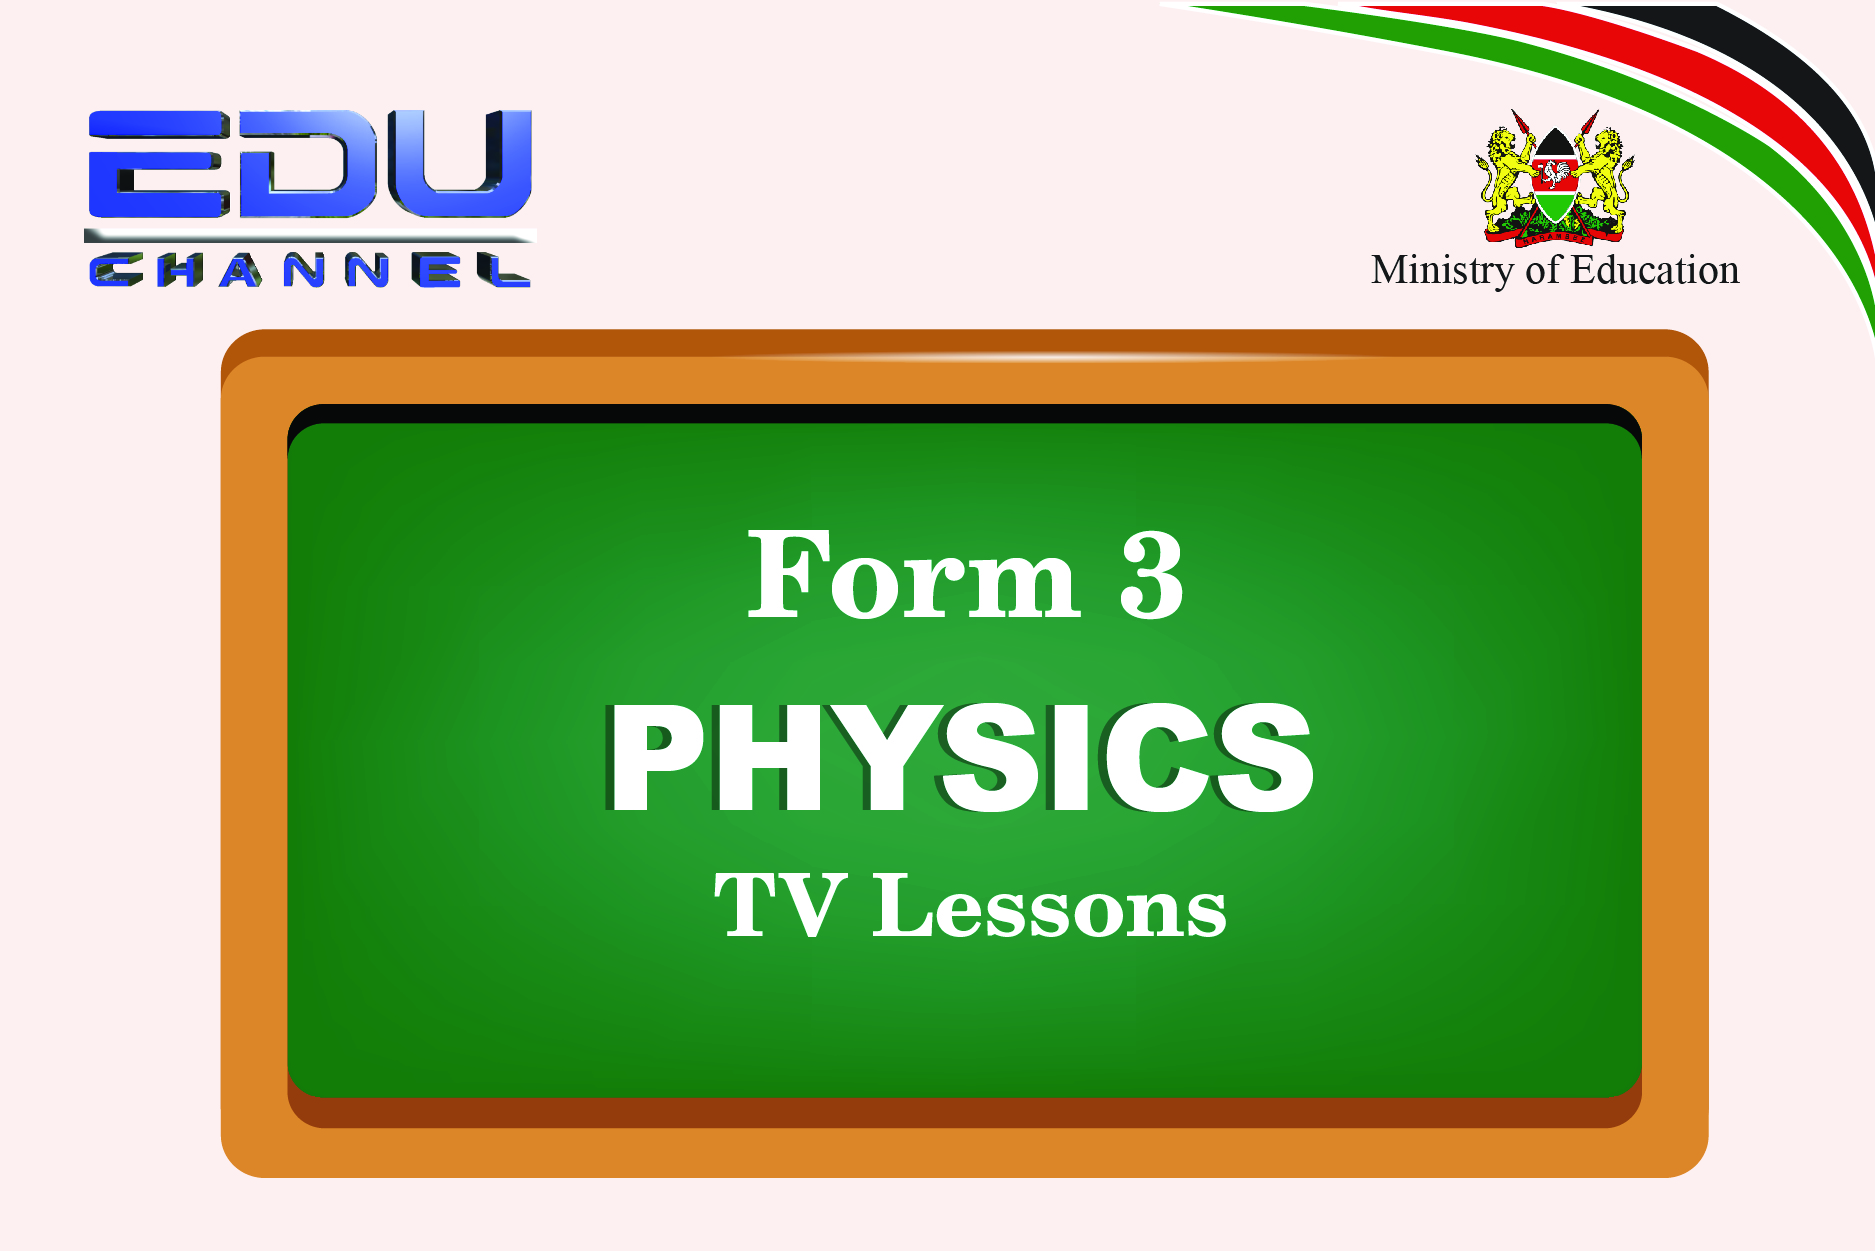 Form 3 Physics Lesson 3: Linear Motions Equations of Motion